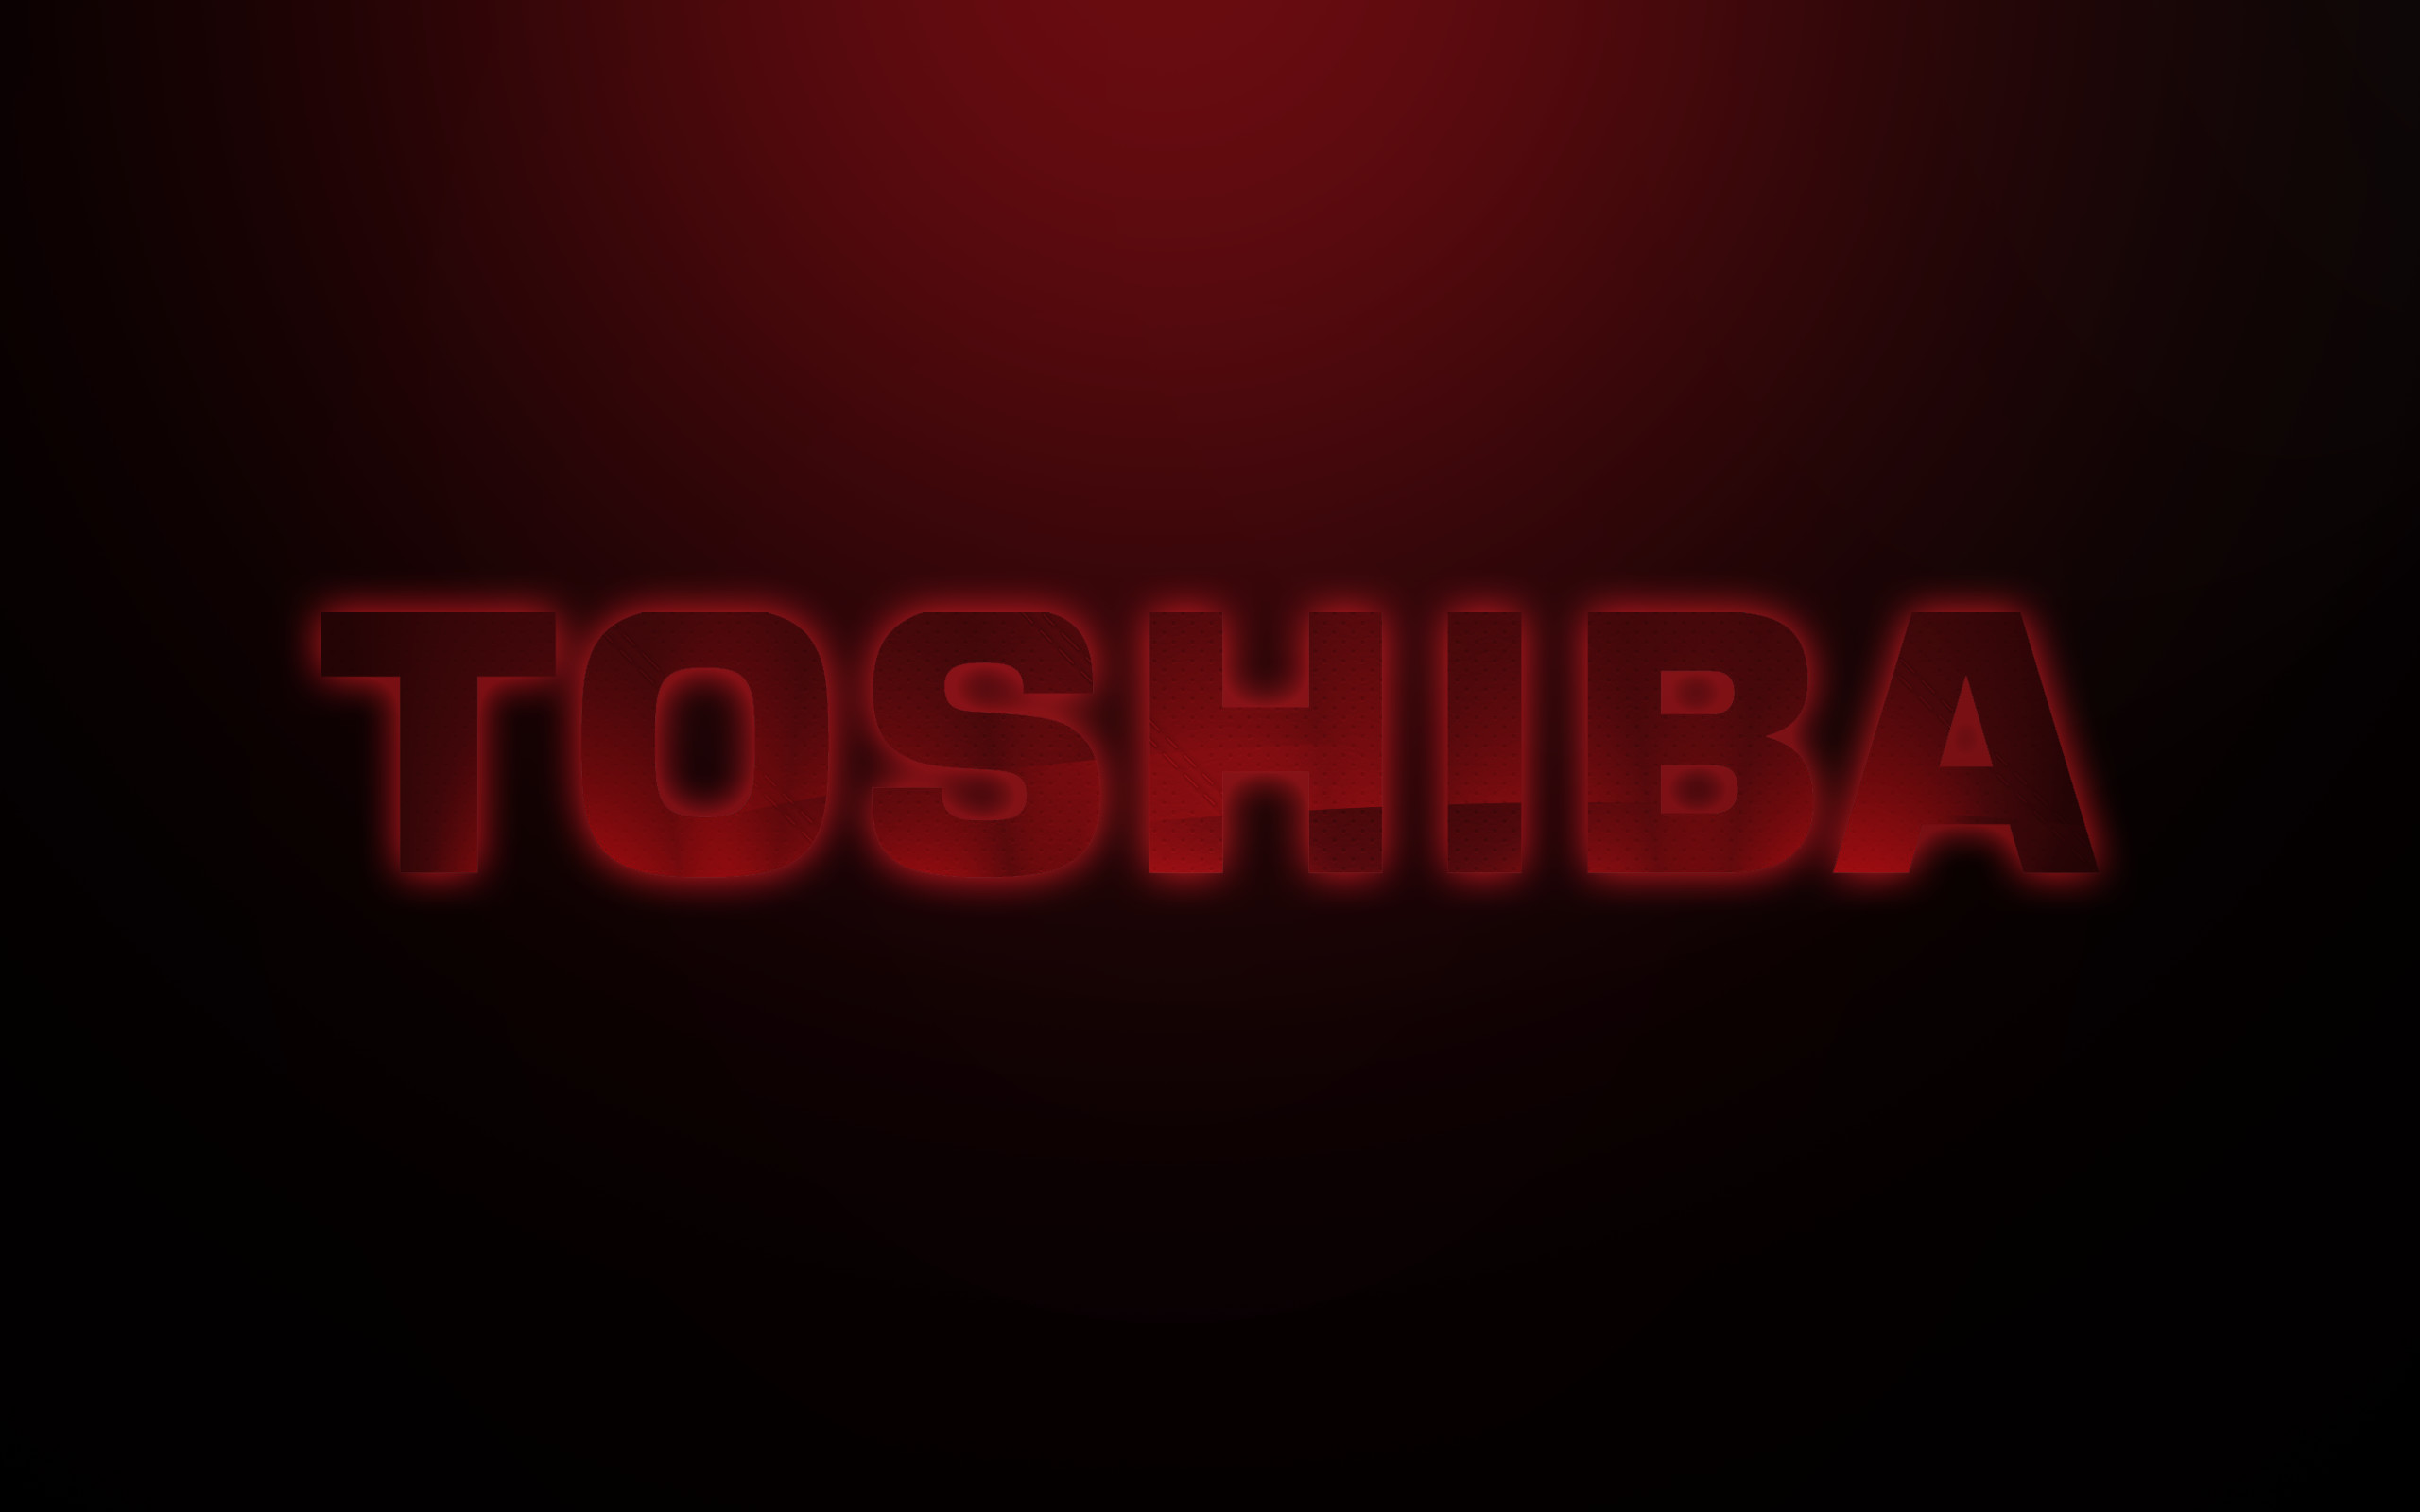 Toshiba Wallpaper by OwlServices.png 17009